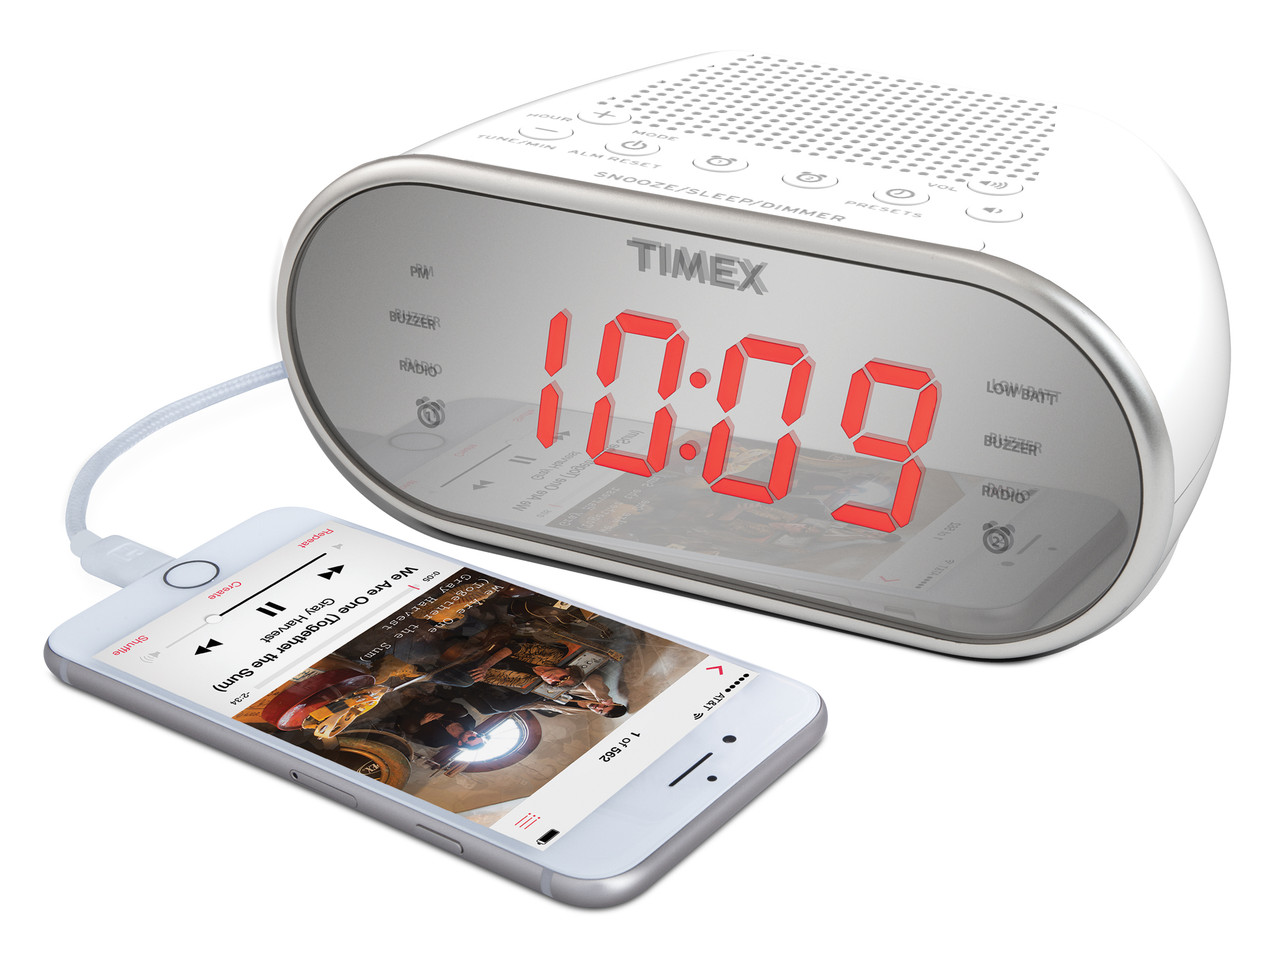 Clock Radio Hidden Camera w/ DVR & WiFi Remote View Stunning HD Video Streaming Live On PC or Any Smart DeviceAll the video being recorded is in crisp & clear quality color video directly onto your PC computer using the free software in HD Video. It does NOT have removable internal memory cards. This ensures youll be able to make out all the details of activity in the room youre recording. In addition, the camera lens shoots wide Field of View of 90 deg horizontal with a 3.8mm focal length so youll be able to see most of your room, edge to edge without missing a thing.  All the video is recorded in avi format using mpeg compression with time/date stamped files for easy saving, emailing or playback on your PC or Mac computer.Important: MAC COMPUTERS: Live viewing & recording is not Mac computer compatible. Live view works only when using the free app for iPhone or iPad.Record Weeks Of Video Onto Your PC or SD CardThe device comes pre-installed with 128 MB of internal memory for capturing weeks of motion activated video. Or. using your computer on local network or remotely, youll never run out of recording memory. This product streams & records directly to software running on your local PC computer  (sorry, no macs). You also have the option of using this to stream video only to any mobile device. With adjustable frame rate controls, its easy to capture weeks to  months of hidden videos. This, along with motion activated recording will give you virtually unlimited video recording time depending on your hard drive size in your computer. The easy to use software will allow you to view up to 32 different cameras from different locations on a single screen. Time/Date Stamp For Quick ID Provides Unquestionable Proof All of the video and recorded video files have time and date stamped directly onto the video. This provides clear-cut proof of exactly when the event occurred. Easy-To-Use Settings For Up To 32 Remote CamerasNothing complicated here. The hidden camera is ready-to-go out of the box. All you need is to have access